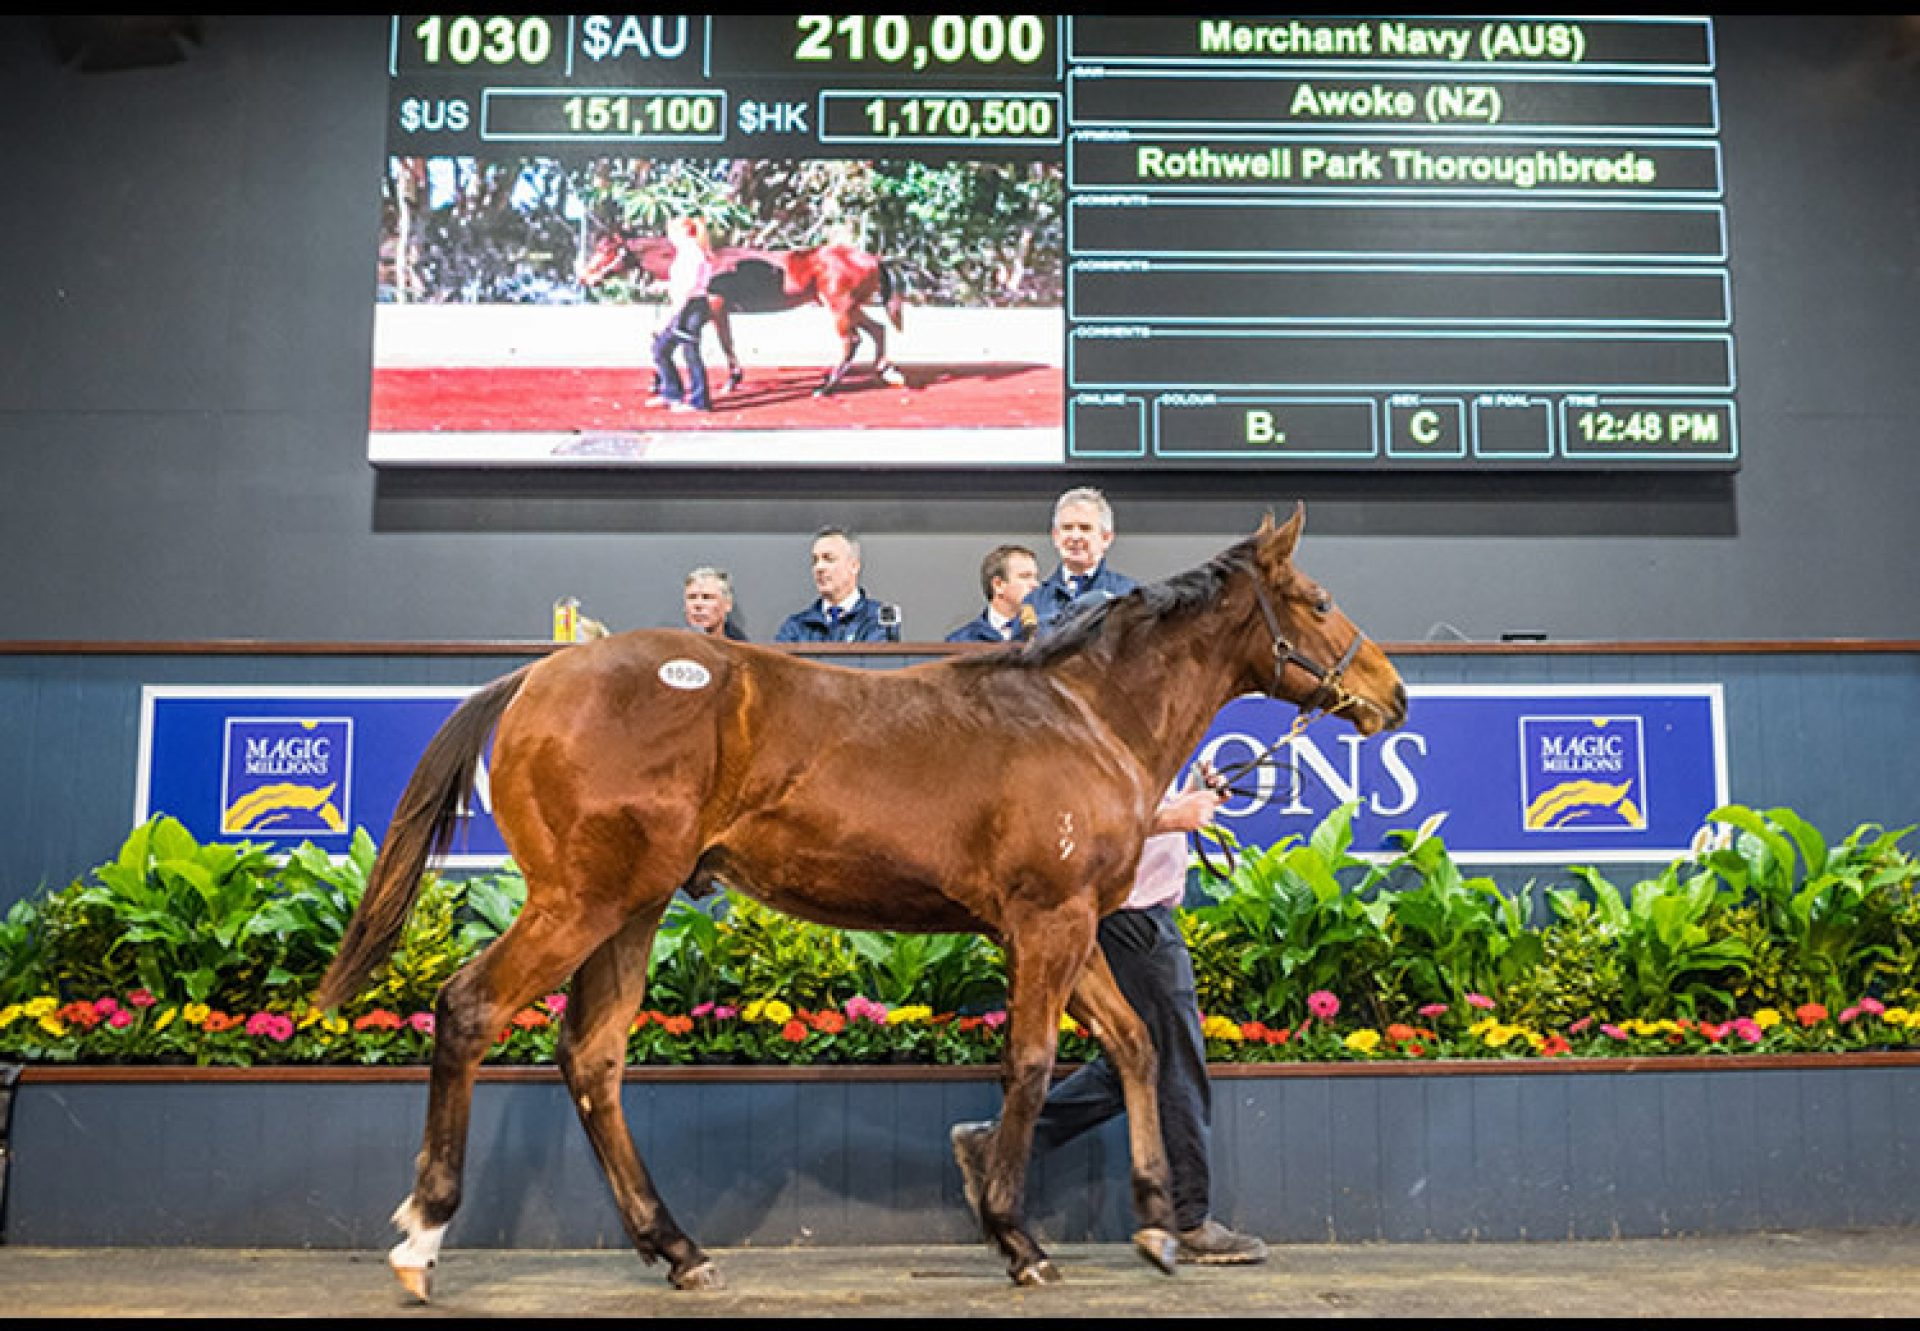 Merchant Navy ex Awoke weanling colt selling for $210,000 at the MM National Weanling sale